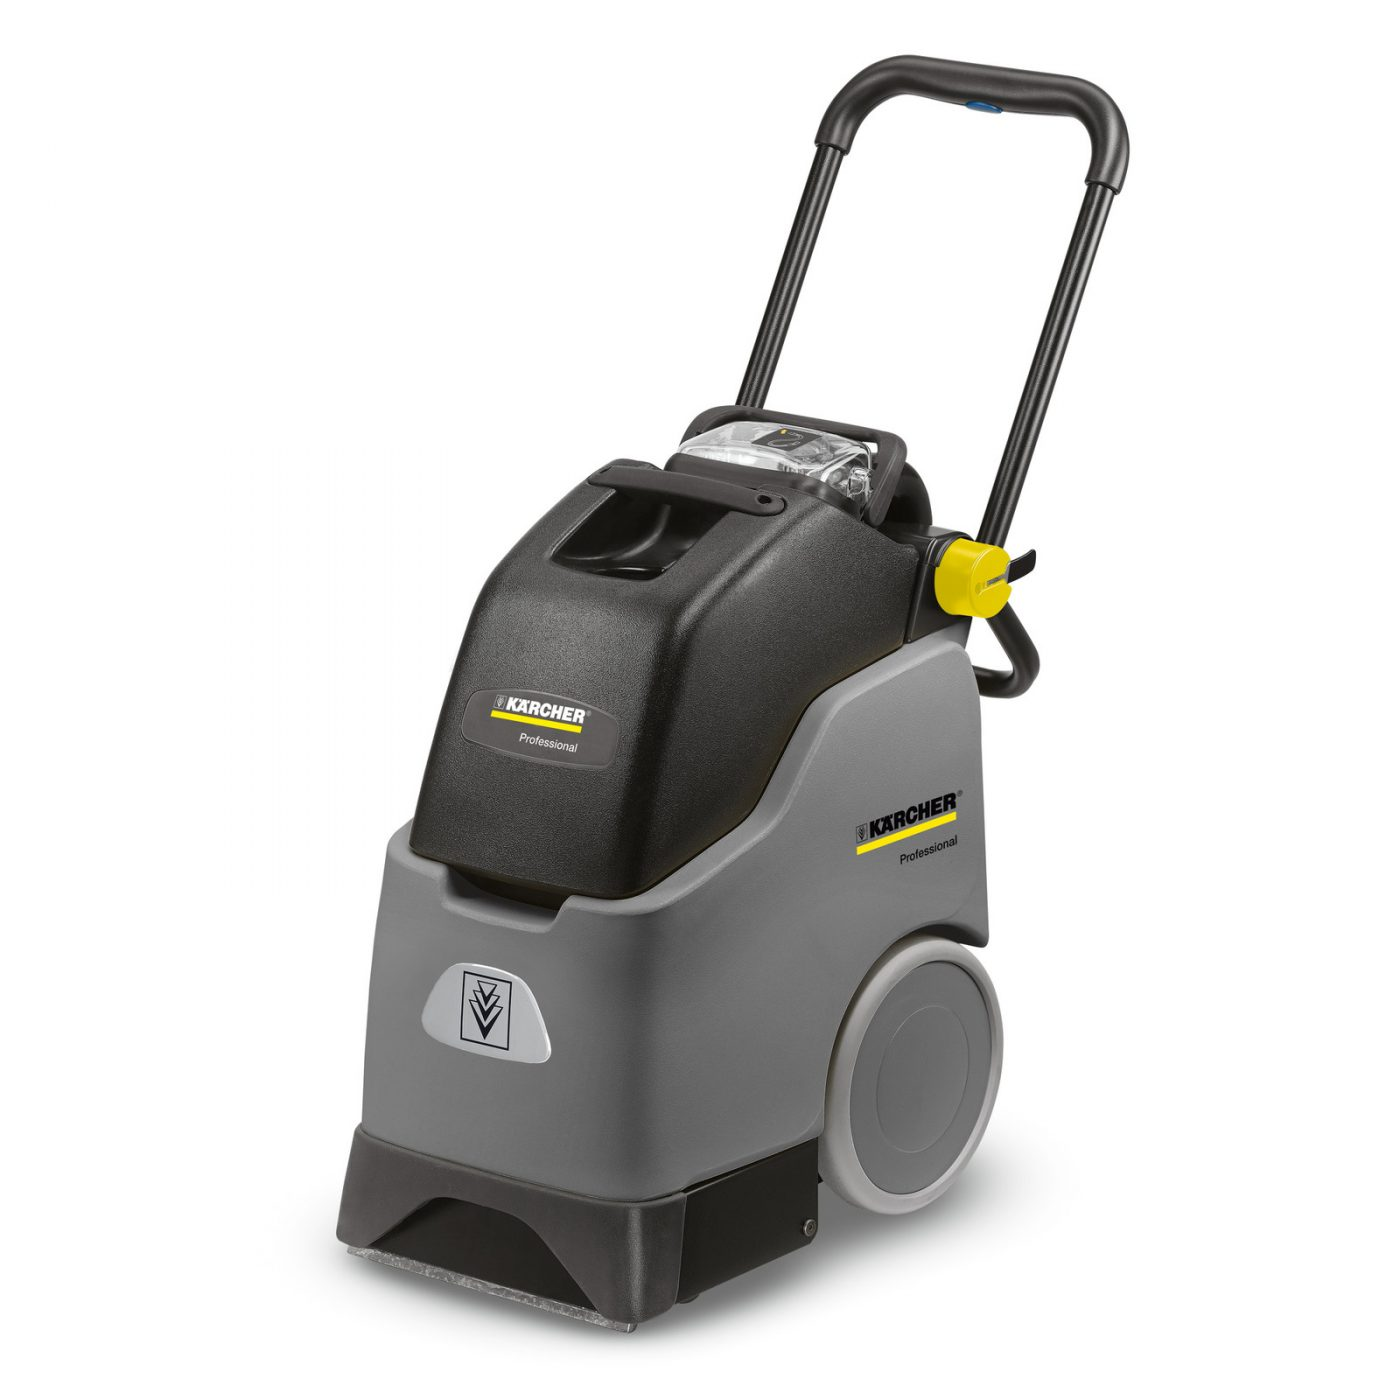 Karcher_1.008-057.0_Carpet Cleaner